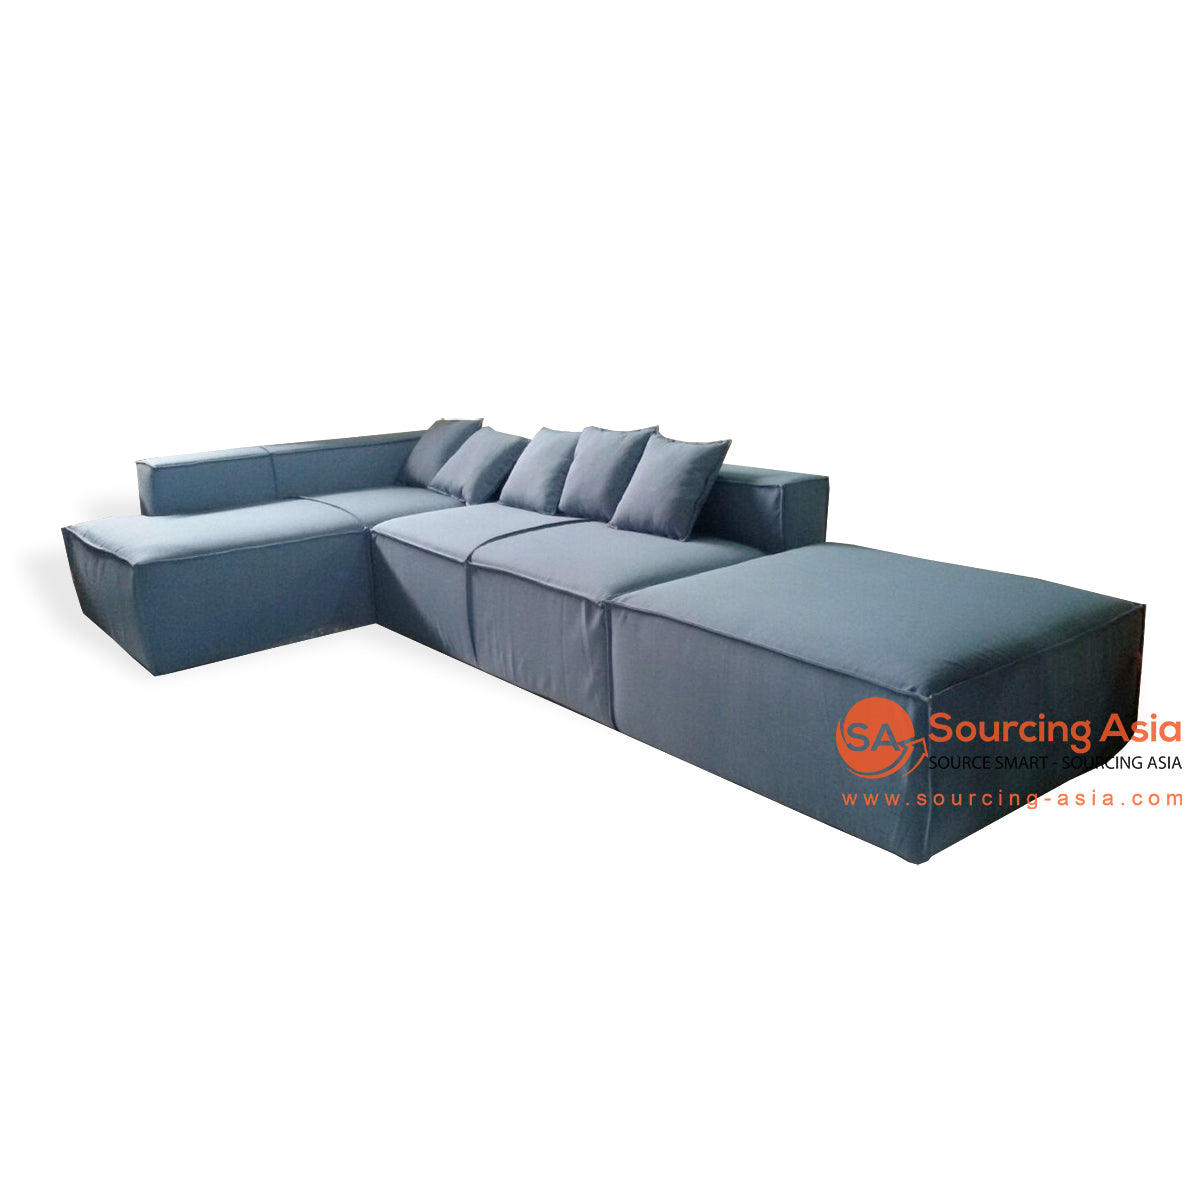 CCM016 DENIM INDOOR LOUNGE L SHAPE WITH INSERT FOAM